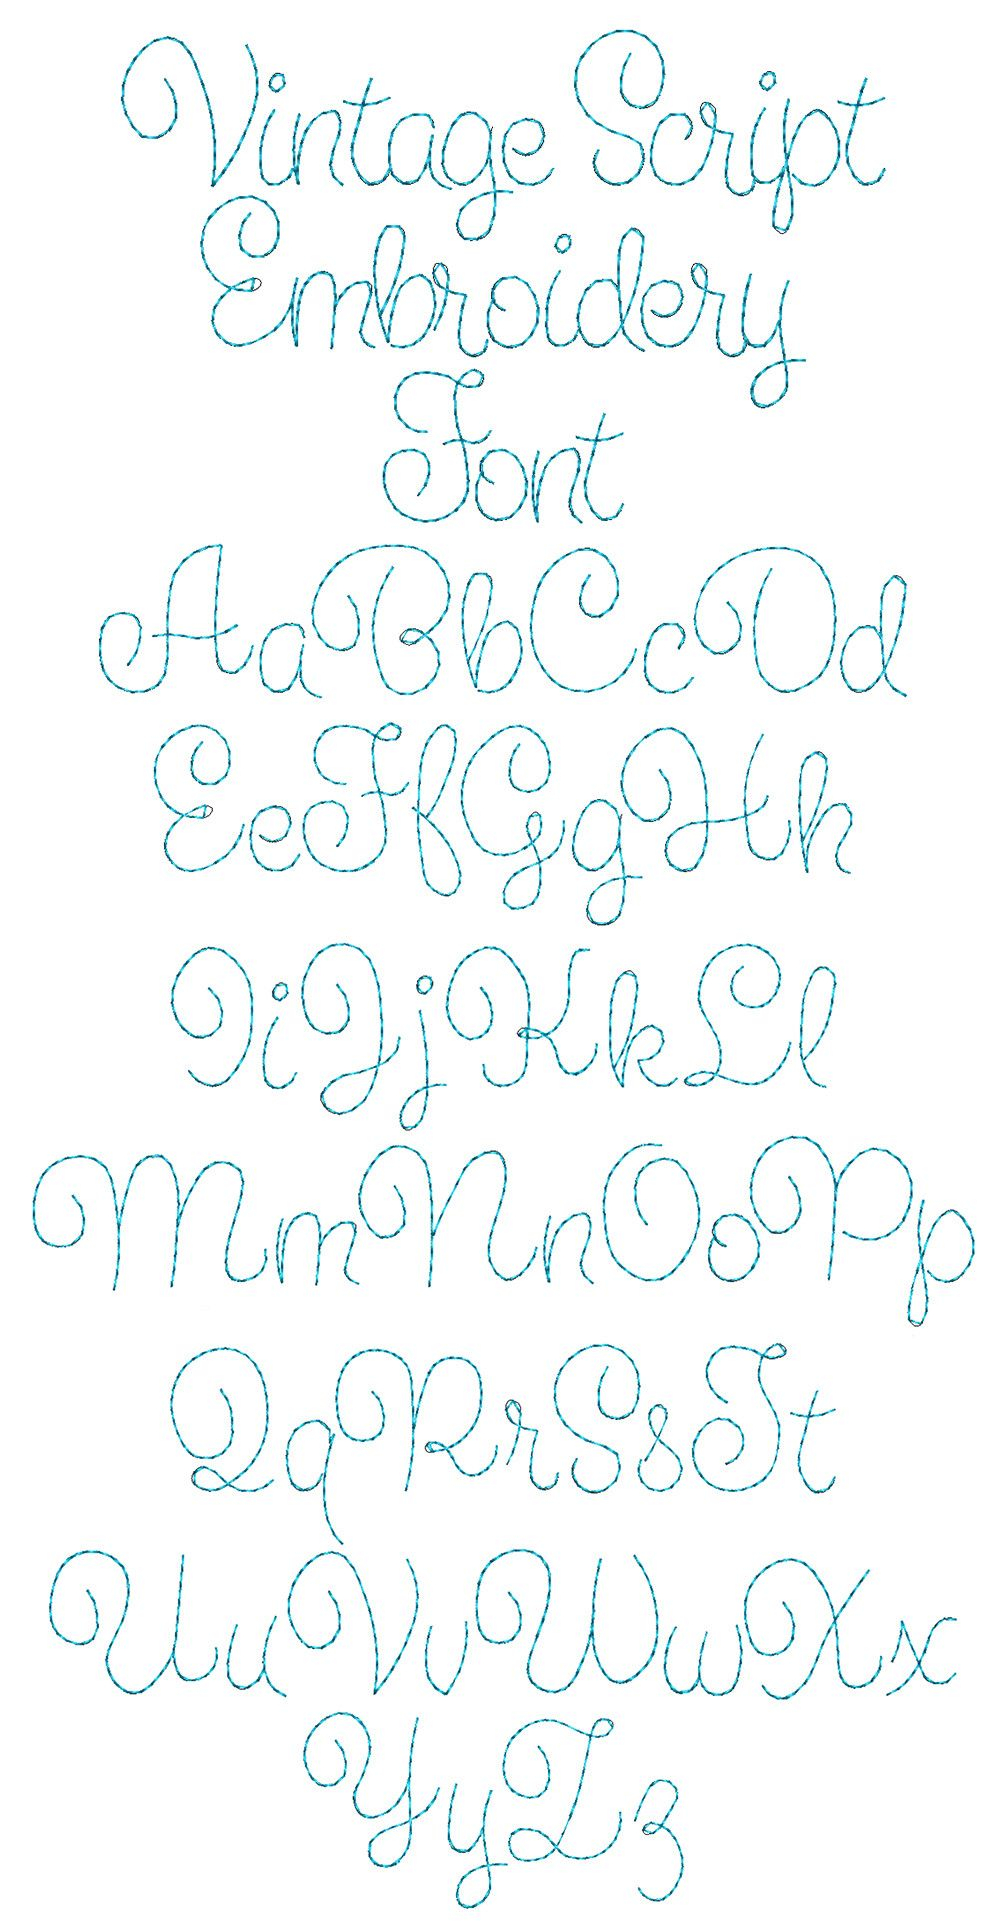 Vintage Script Font | Embroidery Fonts, Hand Embroidery